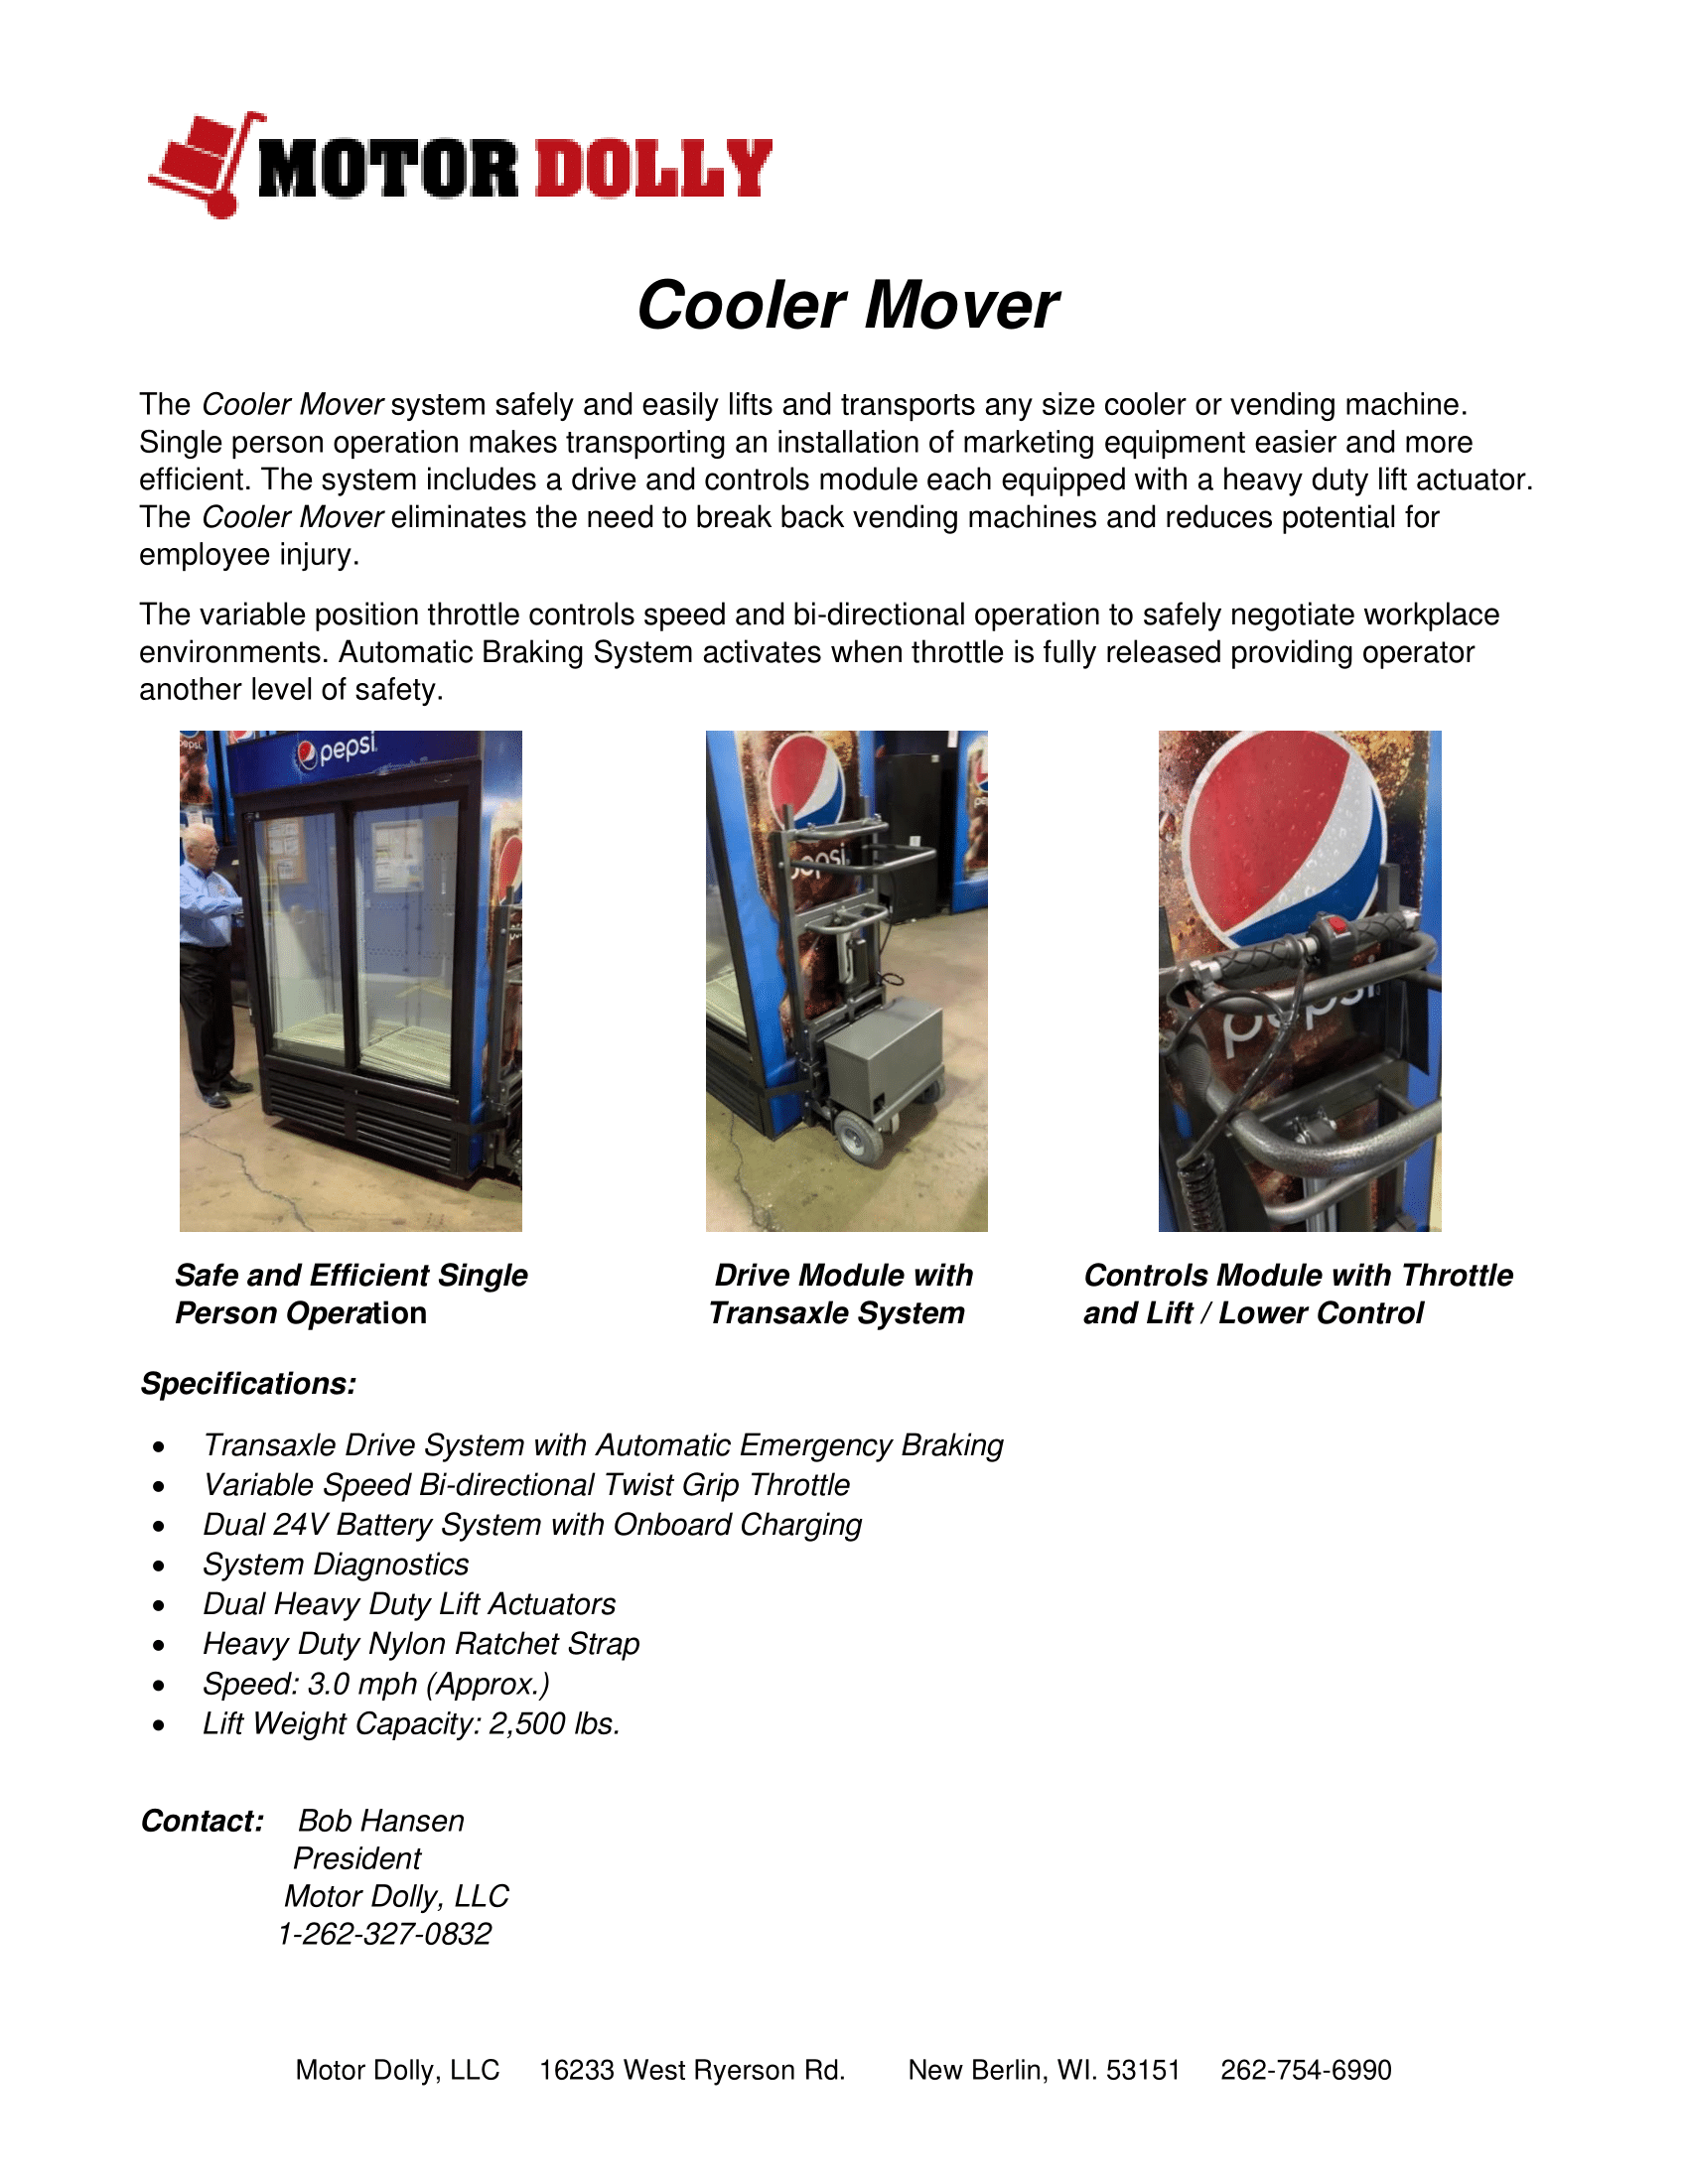 Cooler Mover-brochure-Motor Dolly